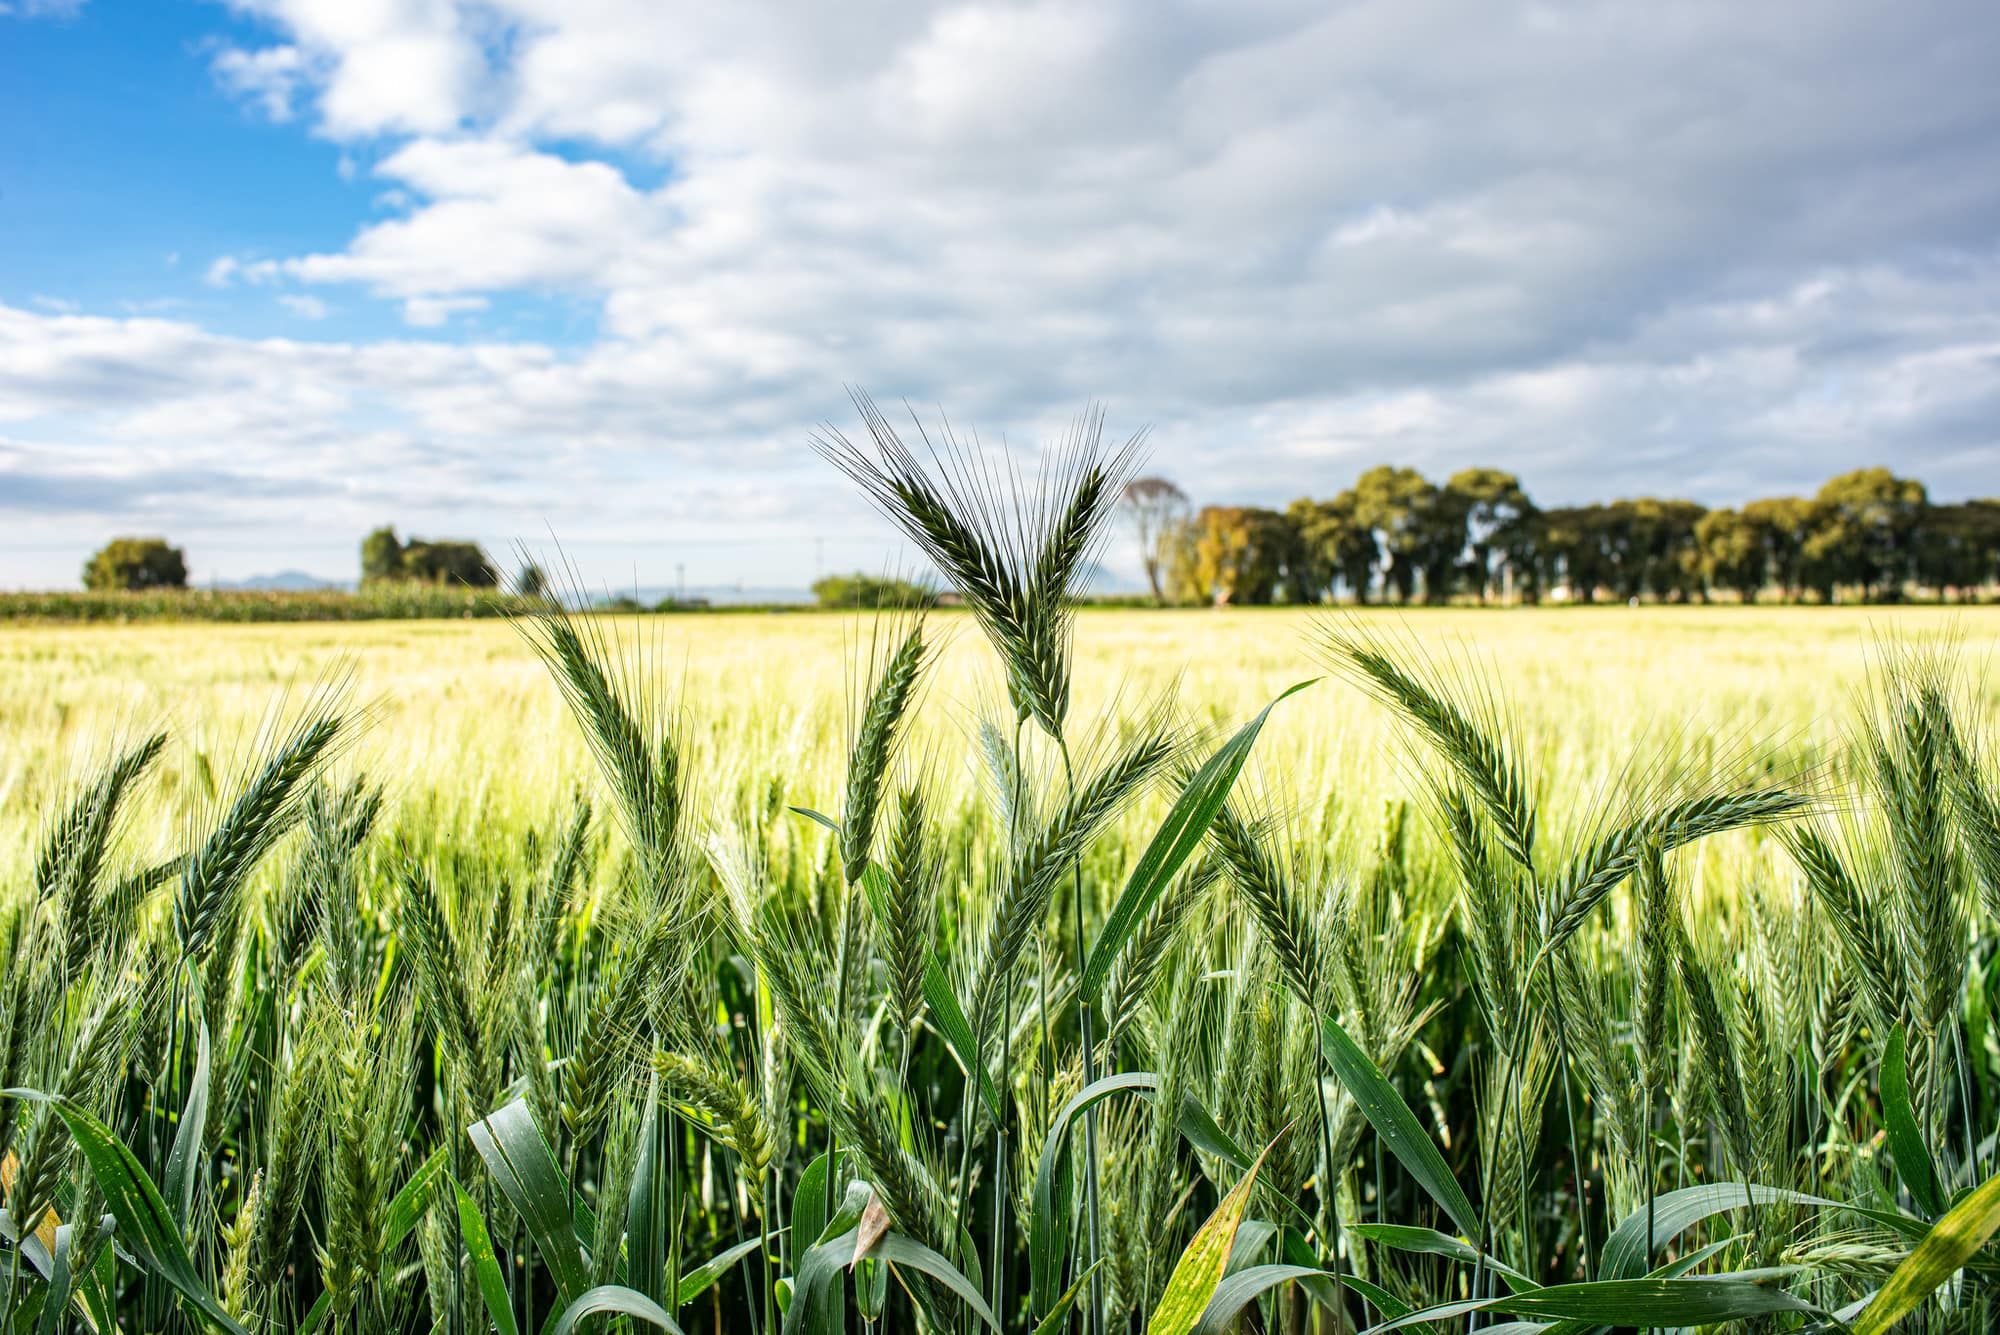 Accelerated Breeding: Meeting Farmers' Needs With Nutritious, Climate-Resilient Crops